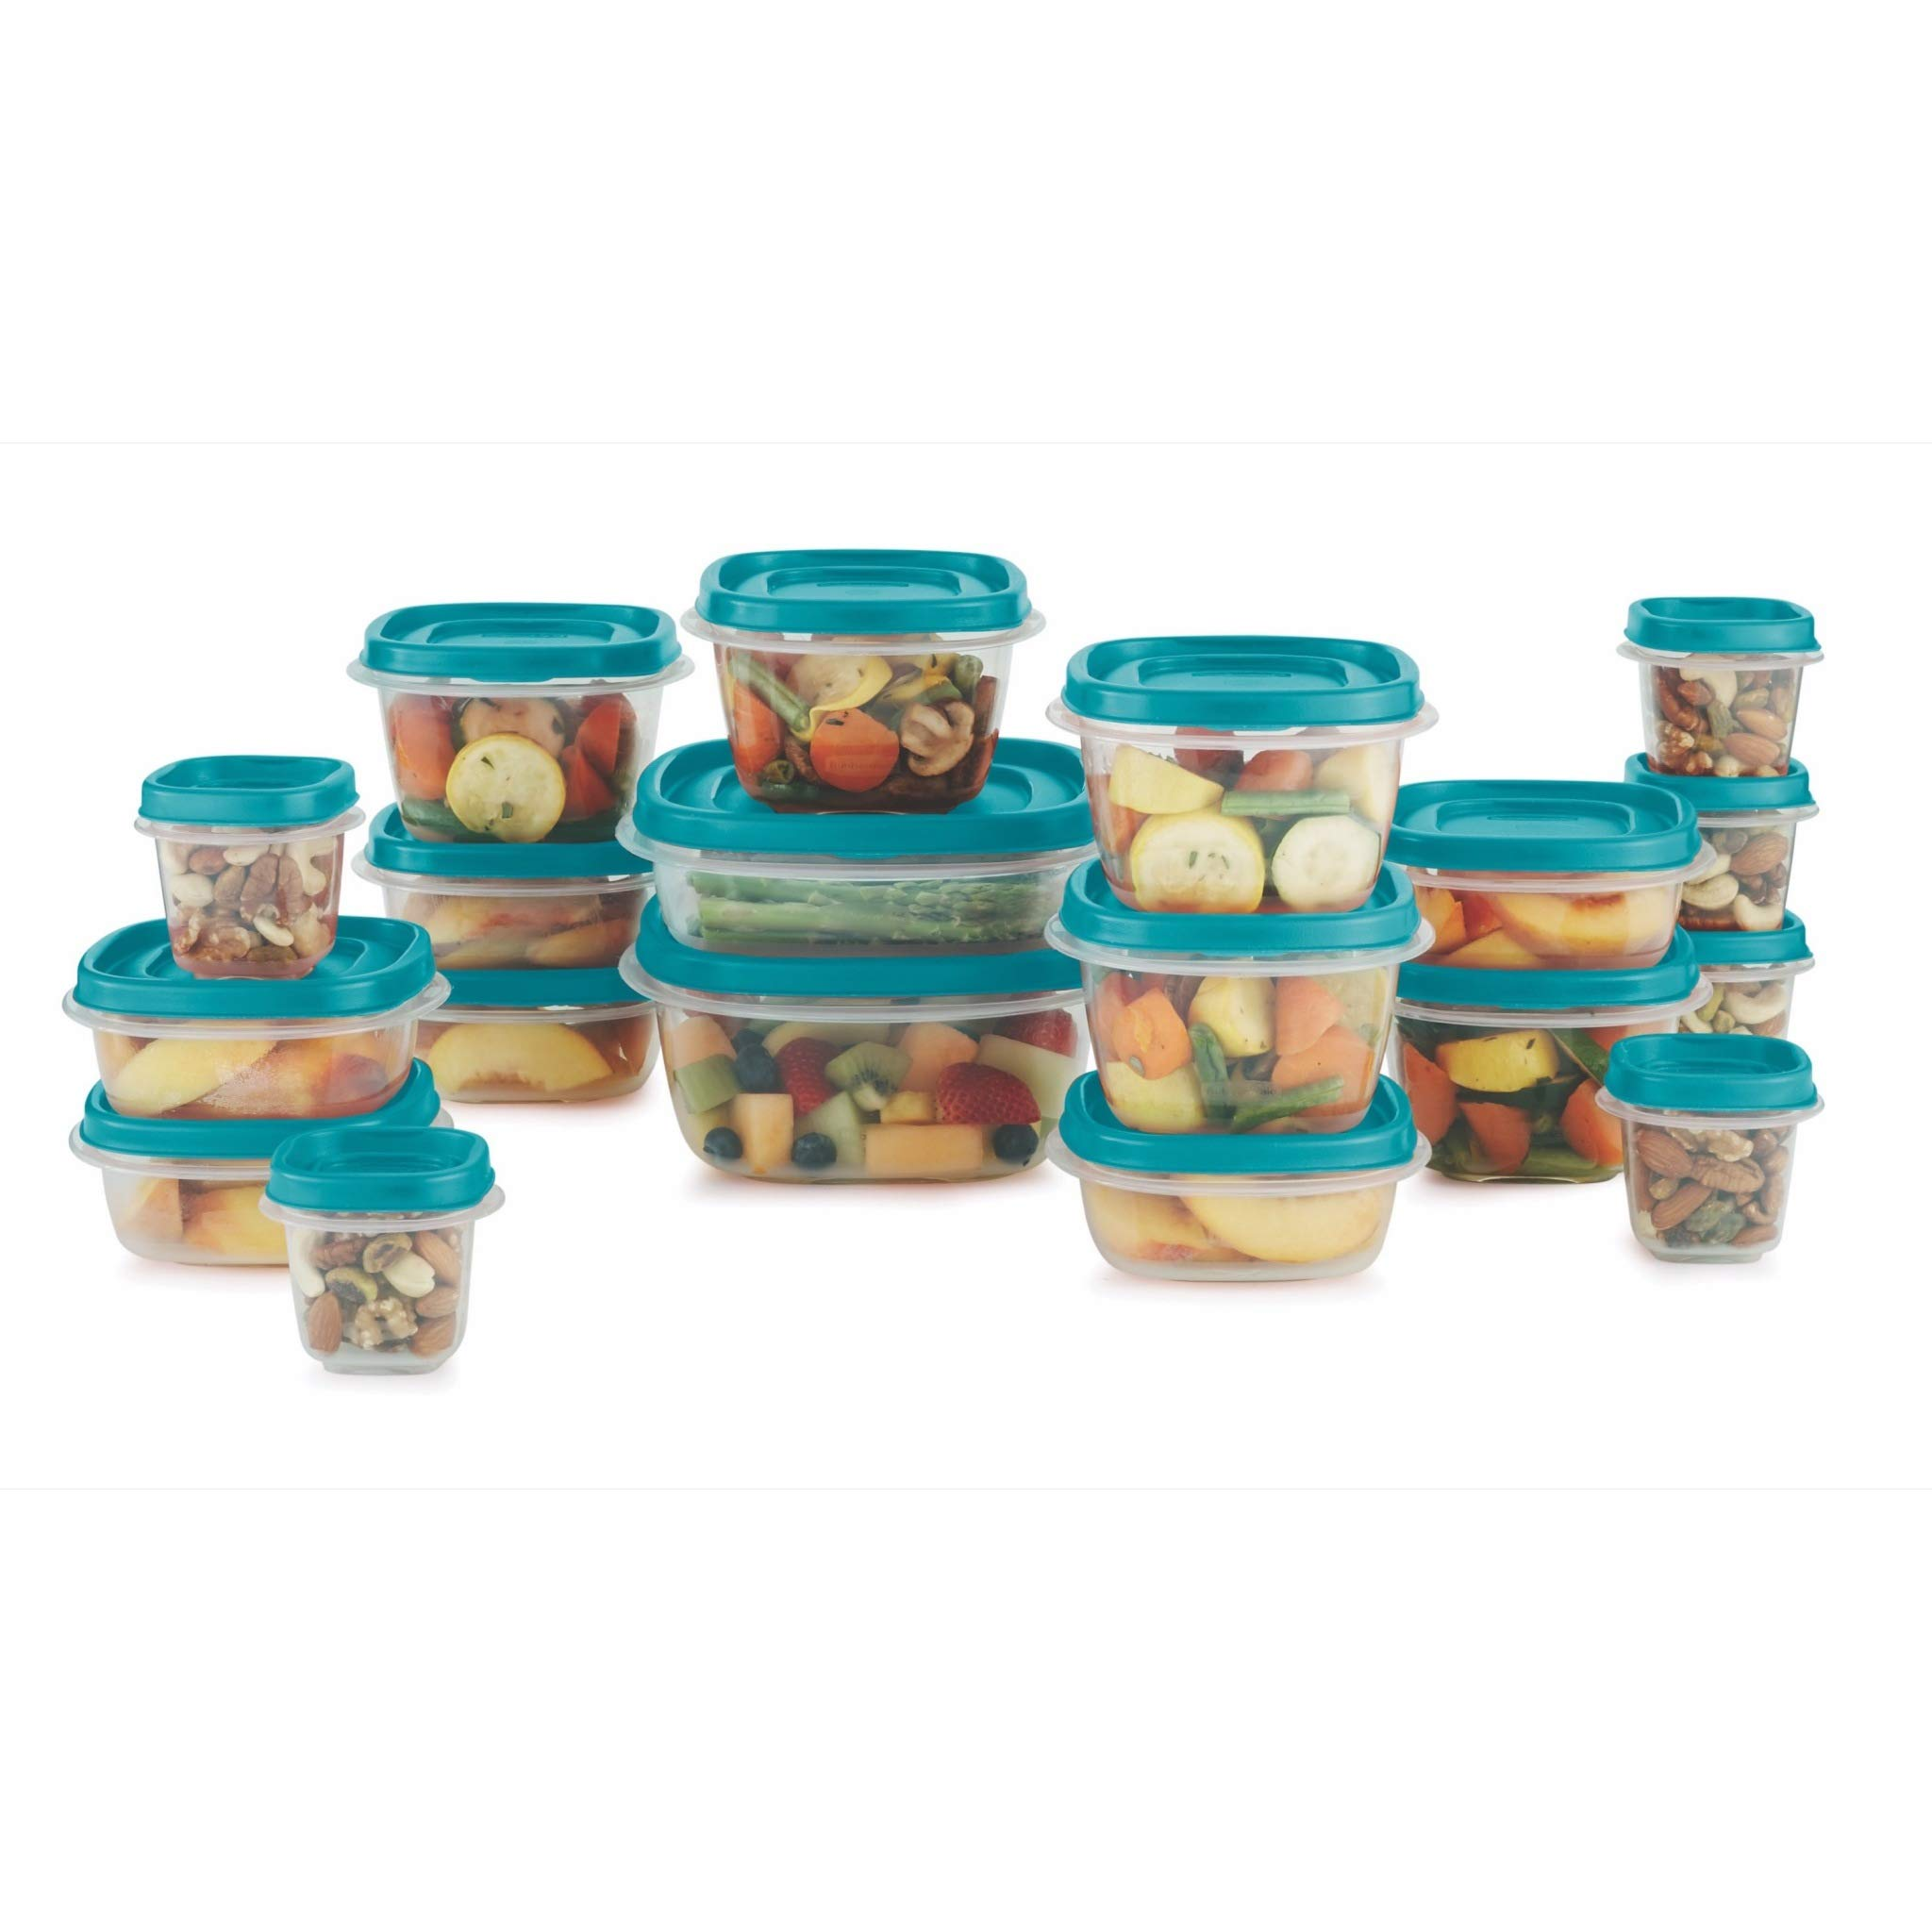 Rubbermaid Food Storage 38 Piece Set with Easy Find Lids, Teal by Rubbermaid